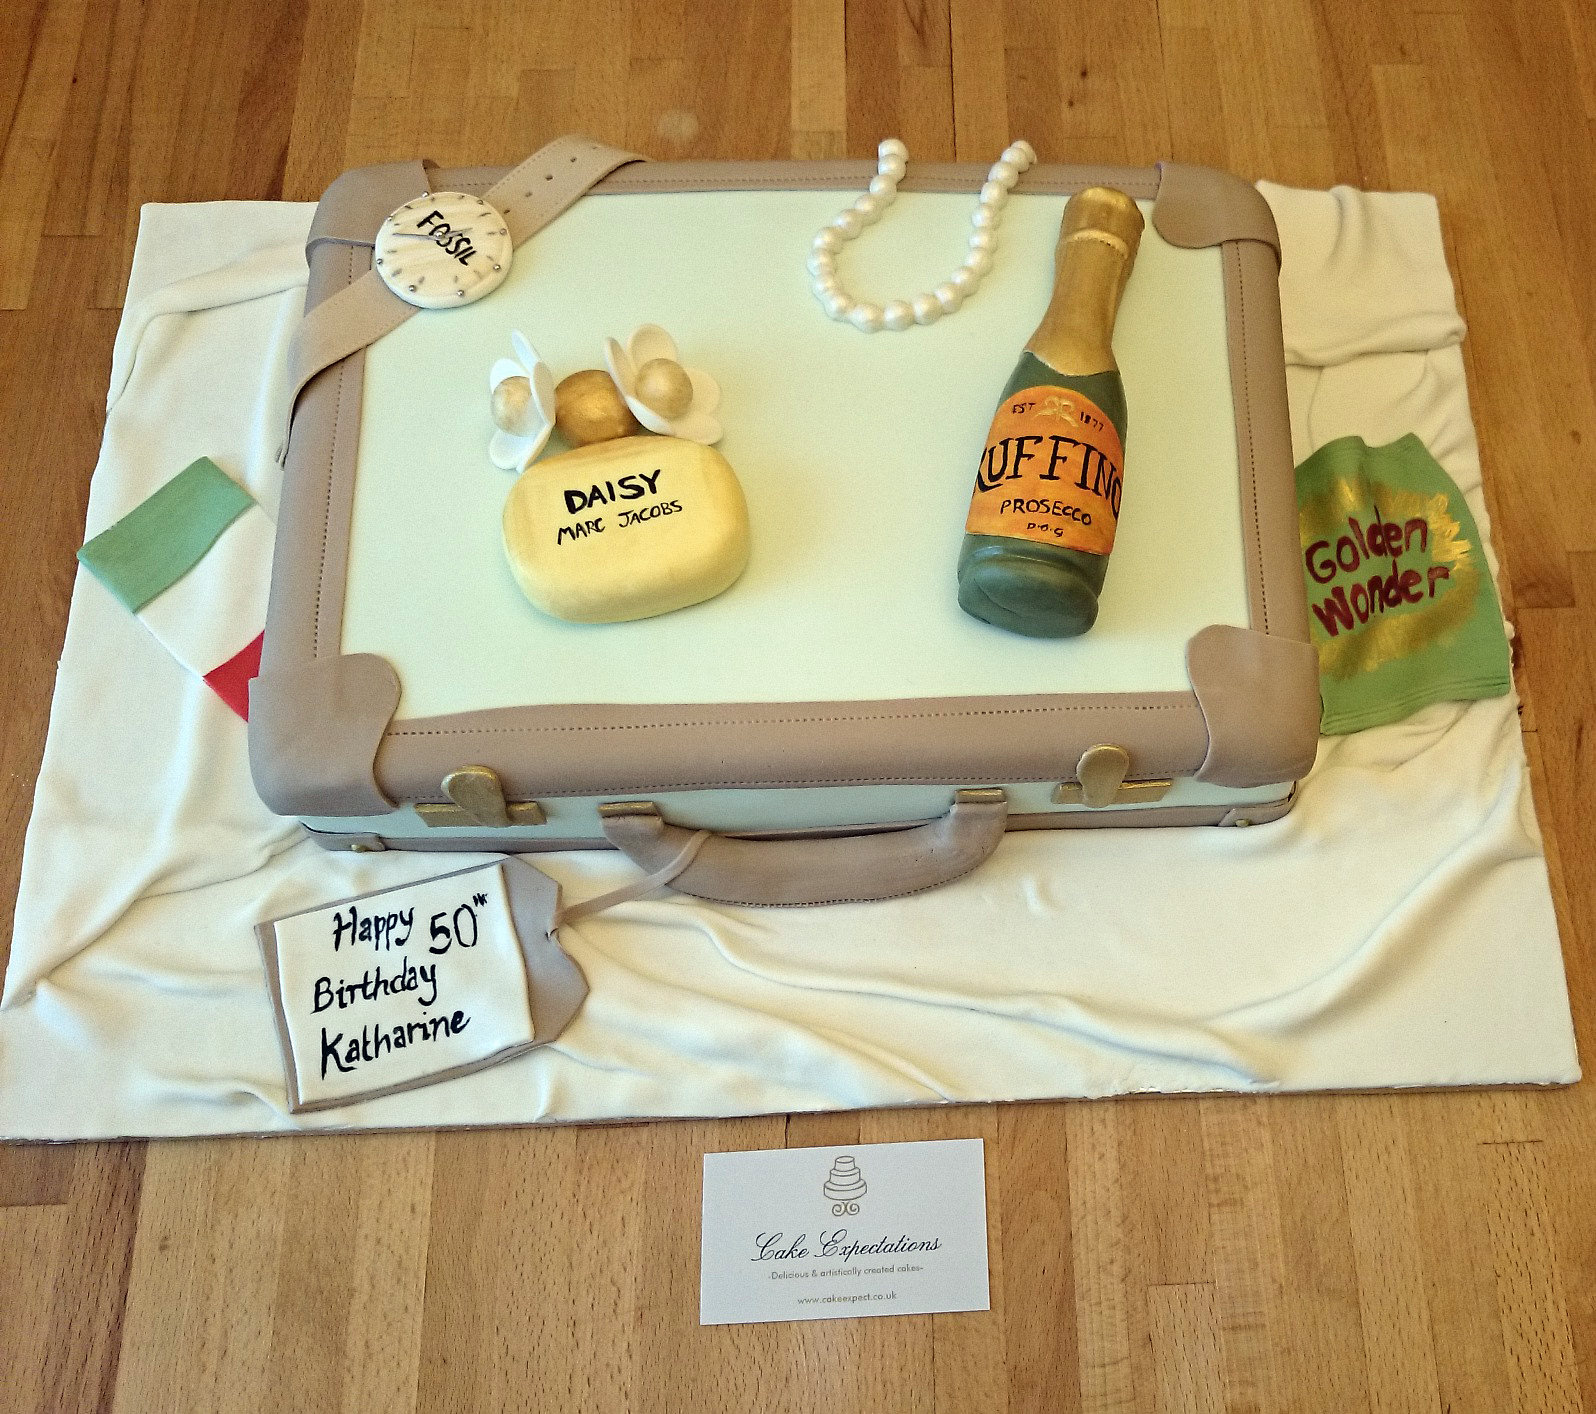 'Off to Italy' Suitcase Cake